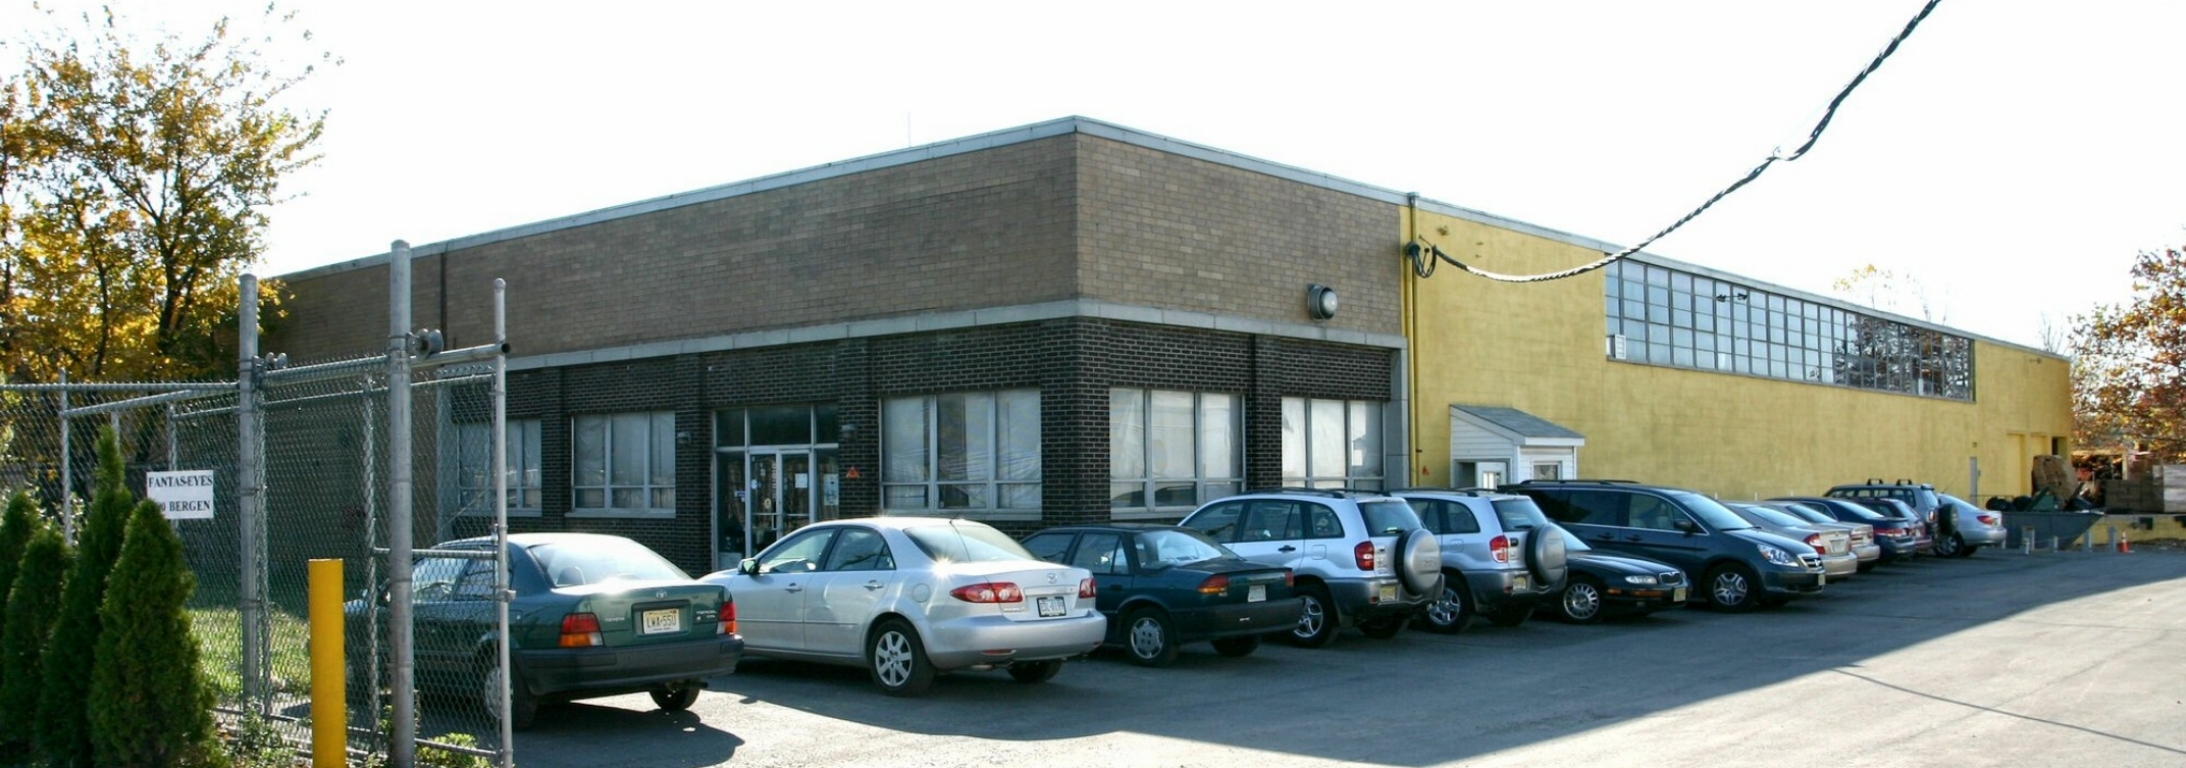 31,000 SF - Kearny, NJ